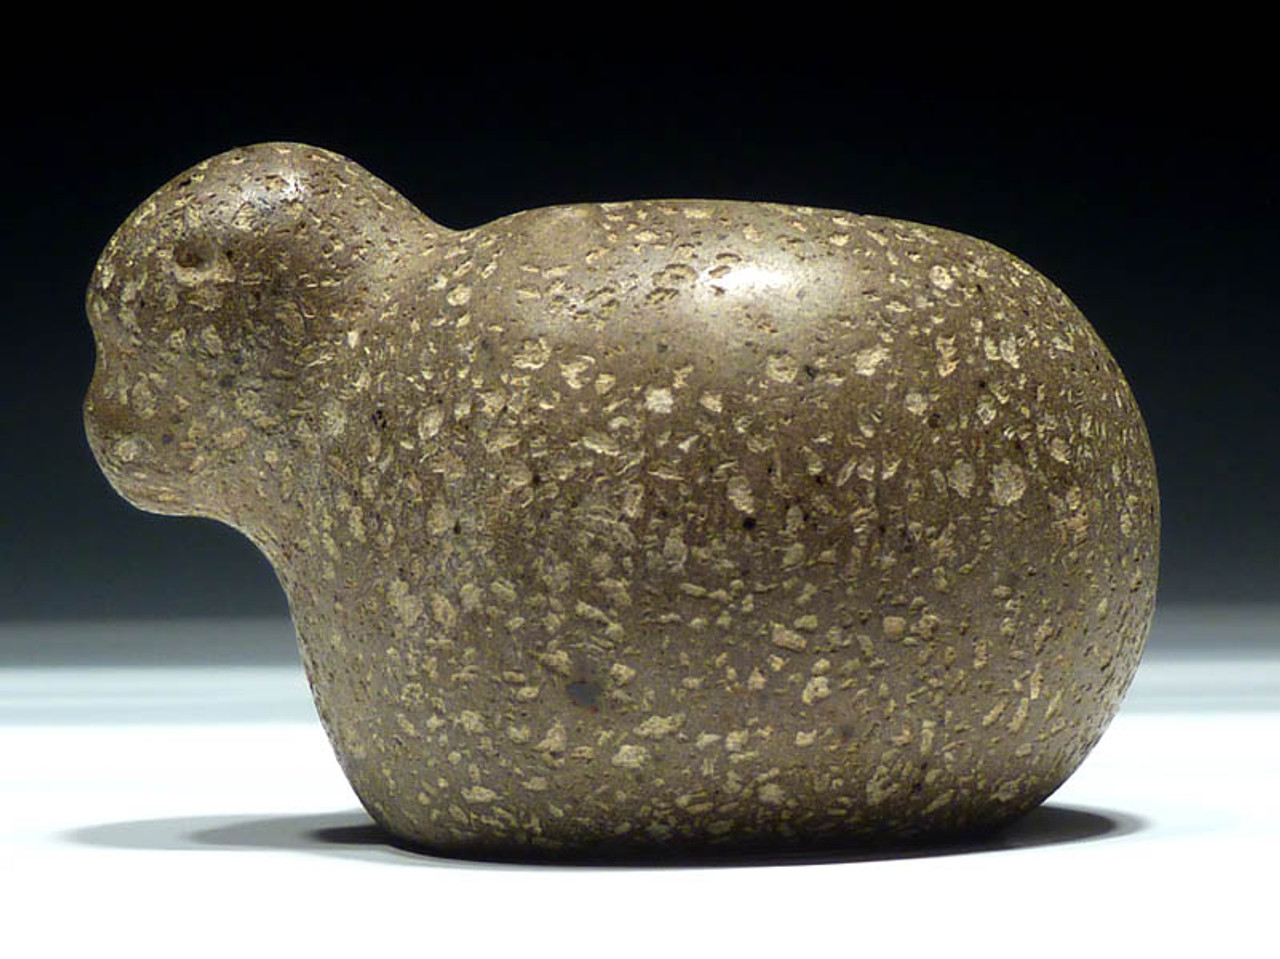 PC031 -  BEAUTIFUL PRE-COLUMBIAN BIRD EFFIGY STONE MACE HEAD FROM CENTRAL AMERICA MADE OUT OF UNUSUAL HARDSTONE